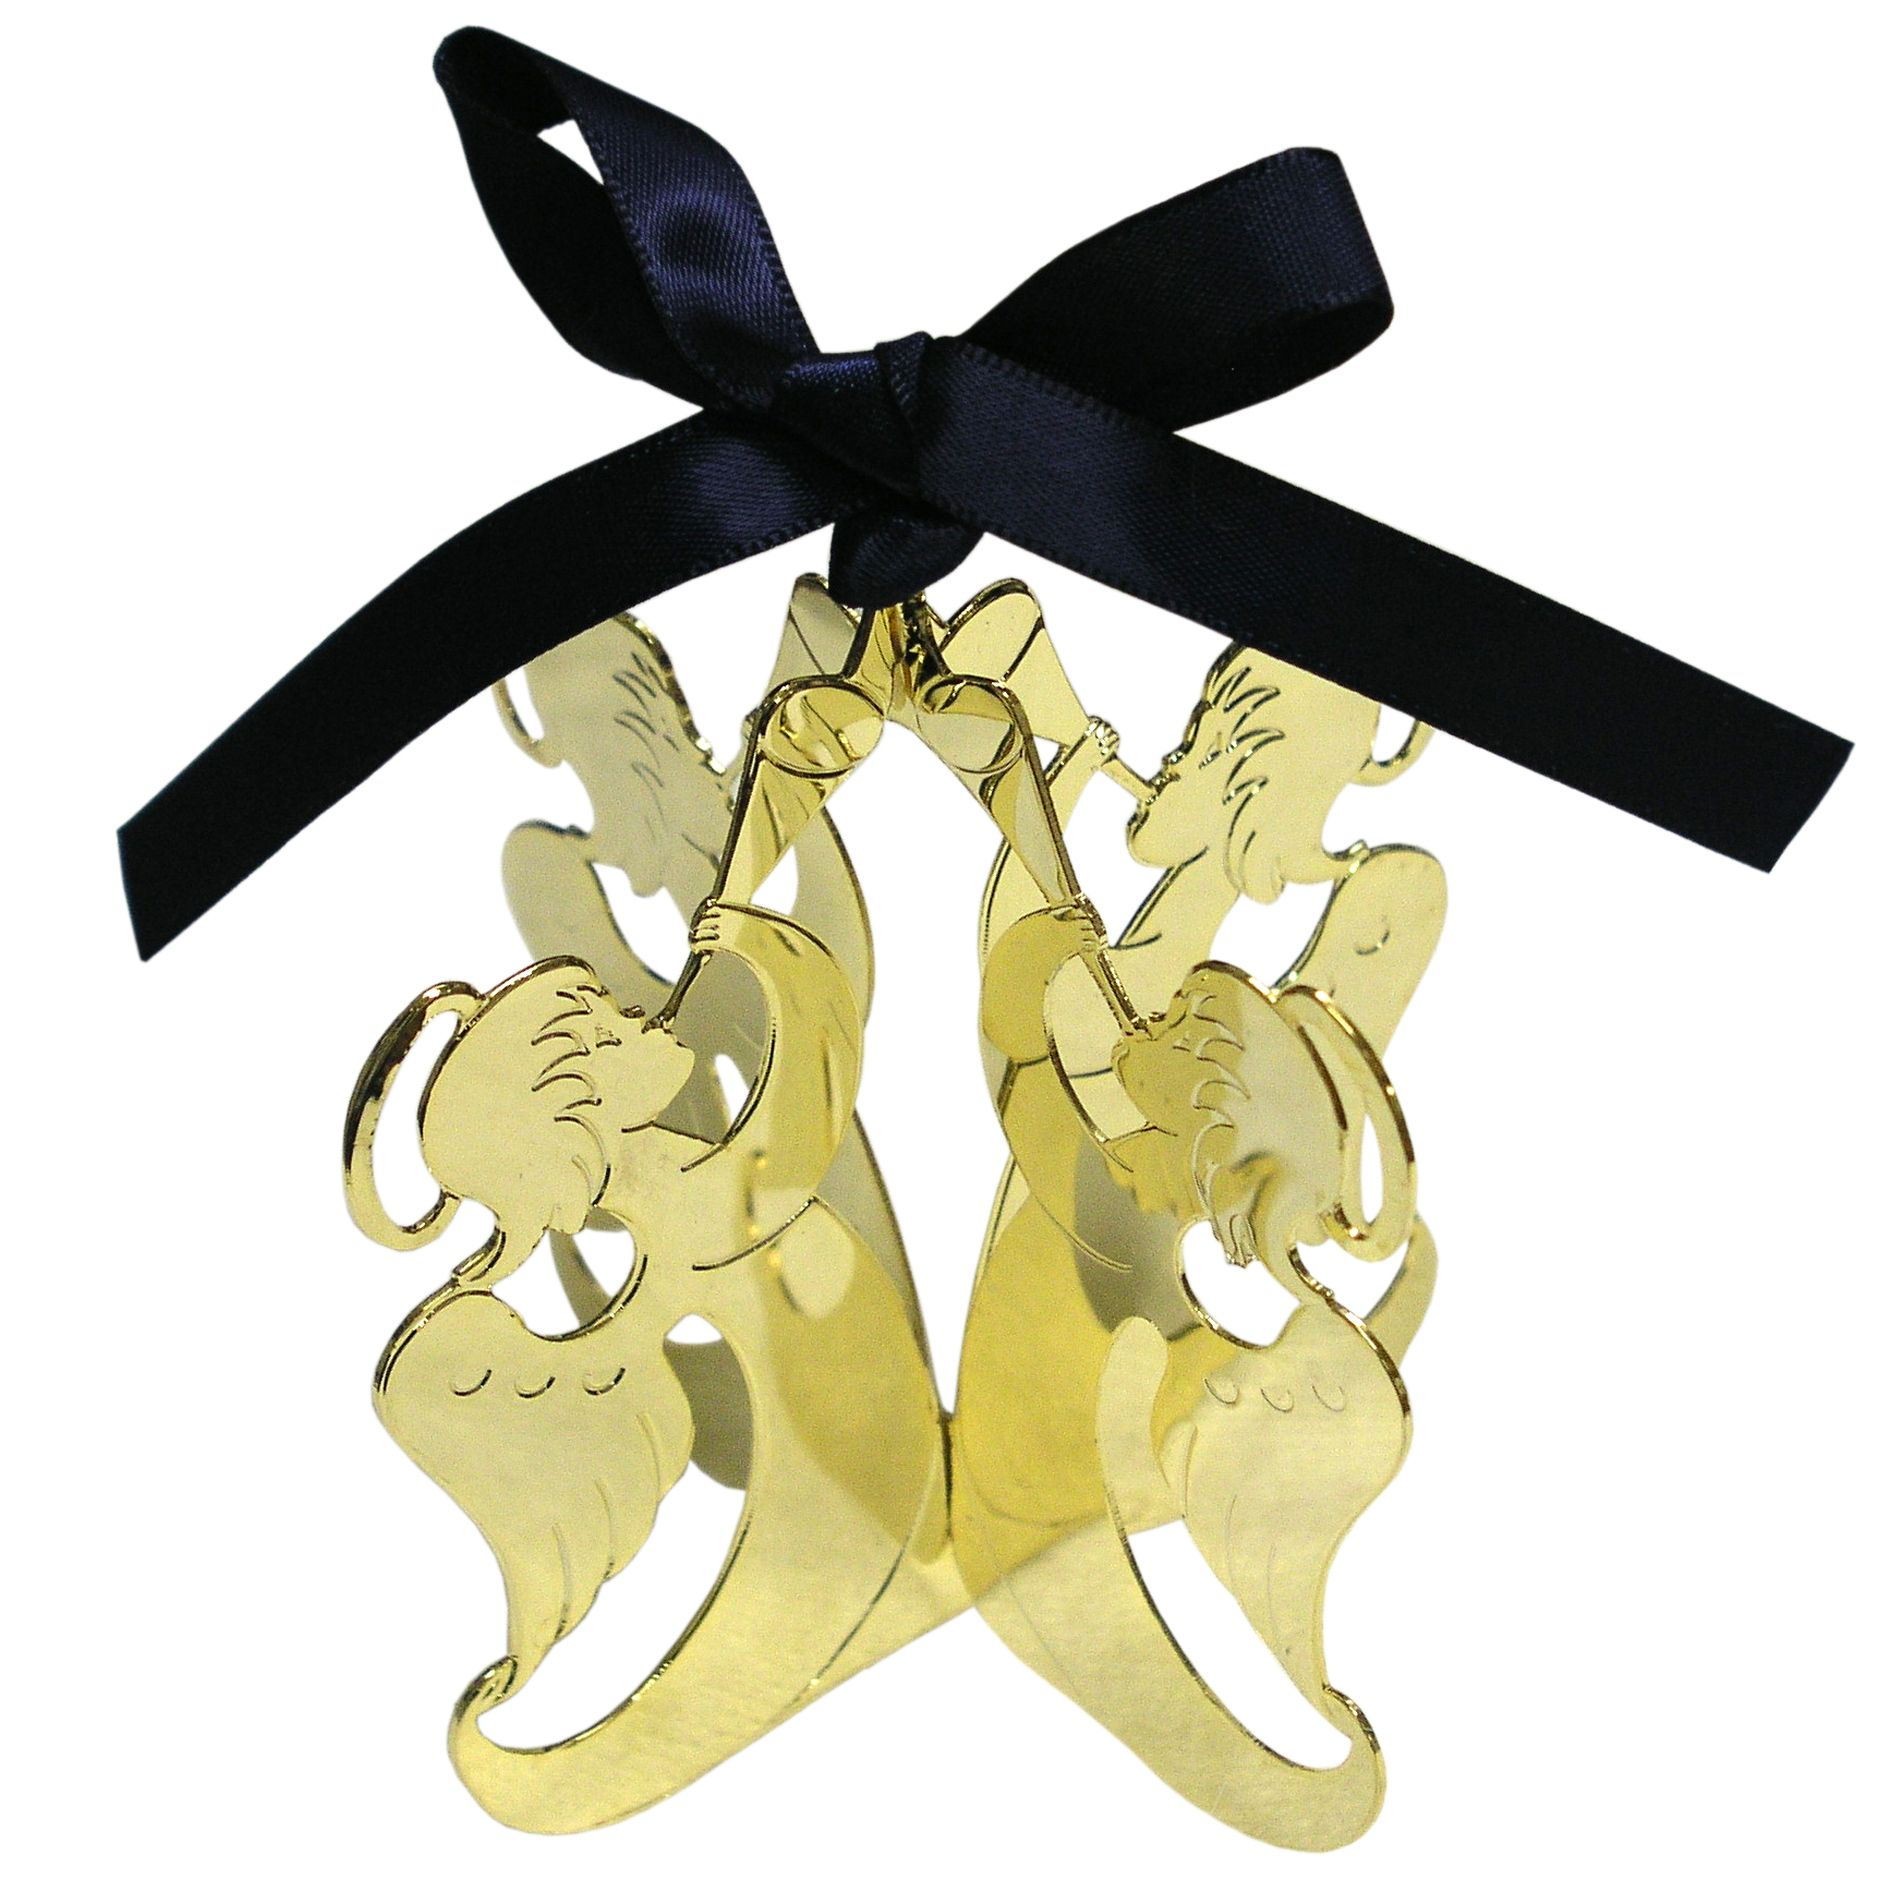 Goldtone Dimensional Angel Ornament